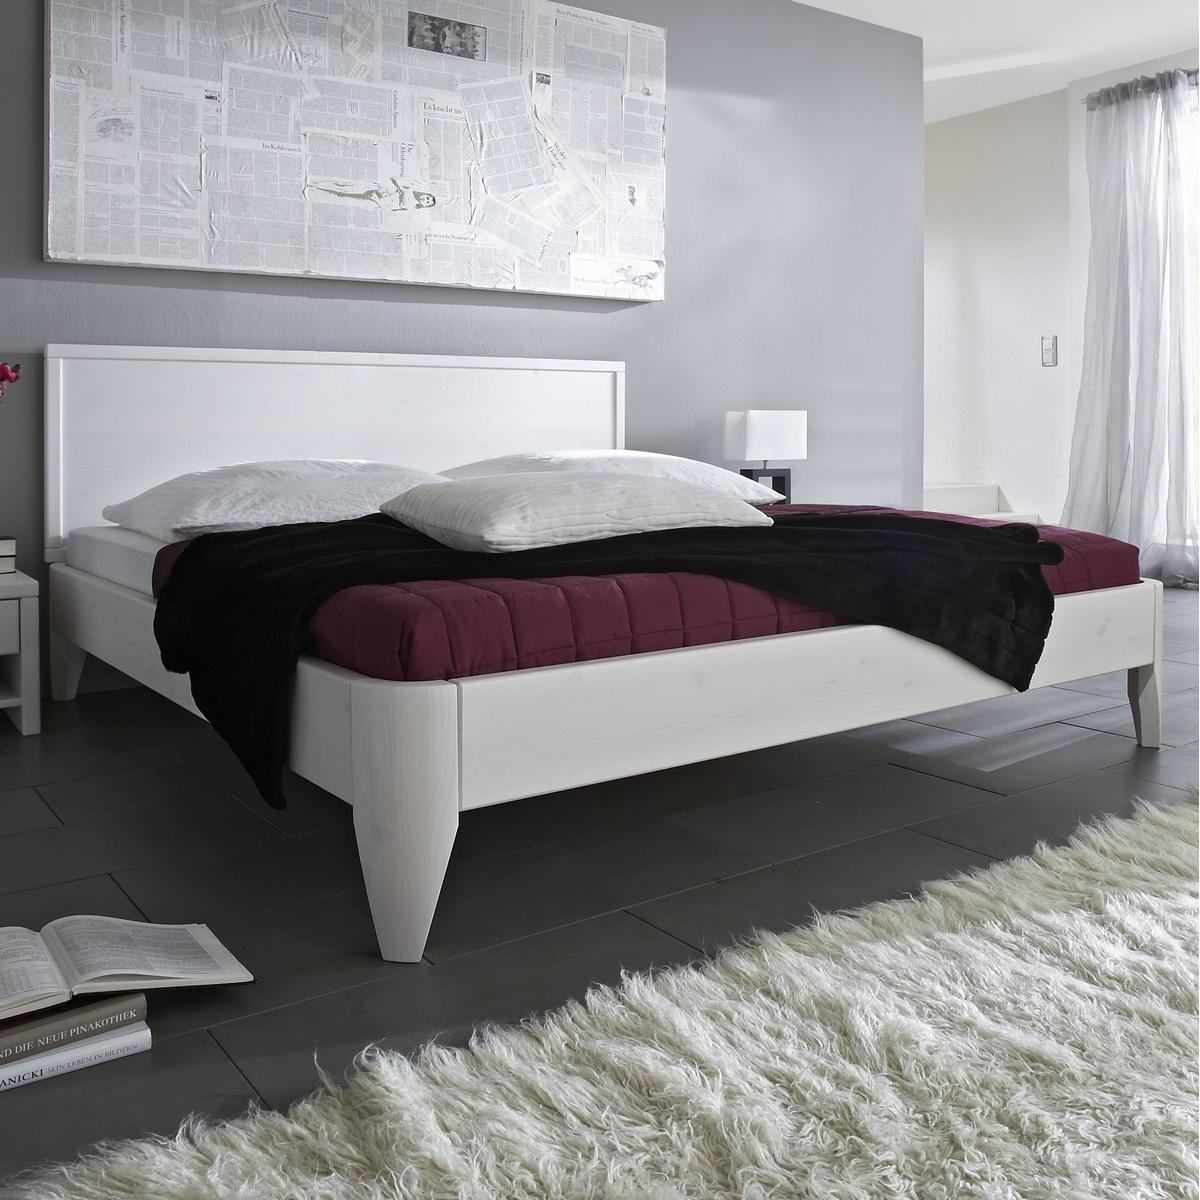 massivholz bett 180x200 easy sleep kiefer massiv wei lackiert 9318 72 0. Black Bedroom Furniture Sets. Home Design Ideas